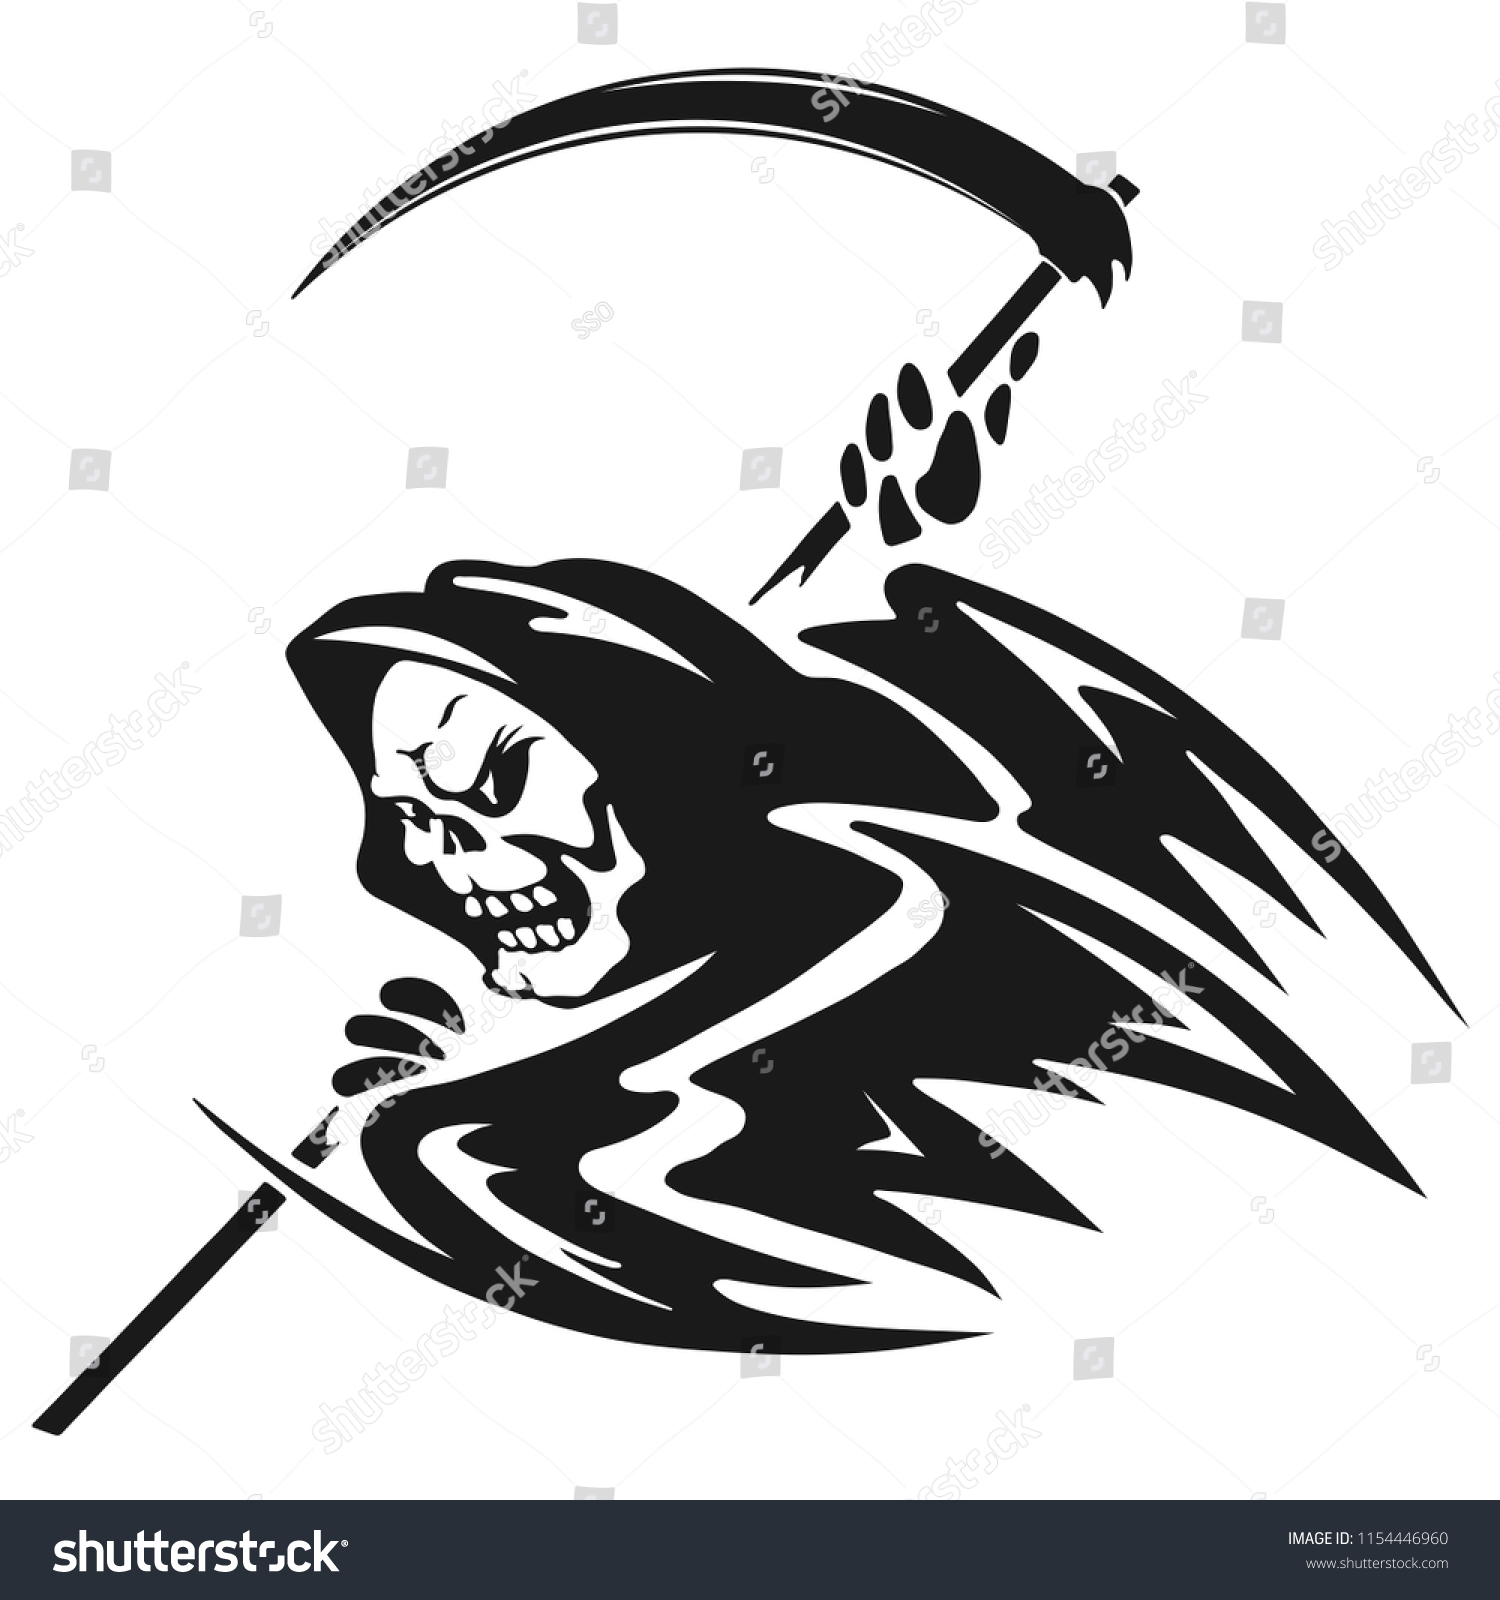 Black white illustration death scythe death stock vector